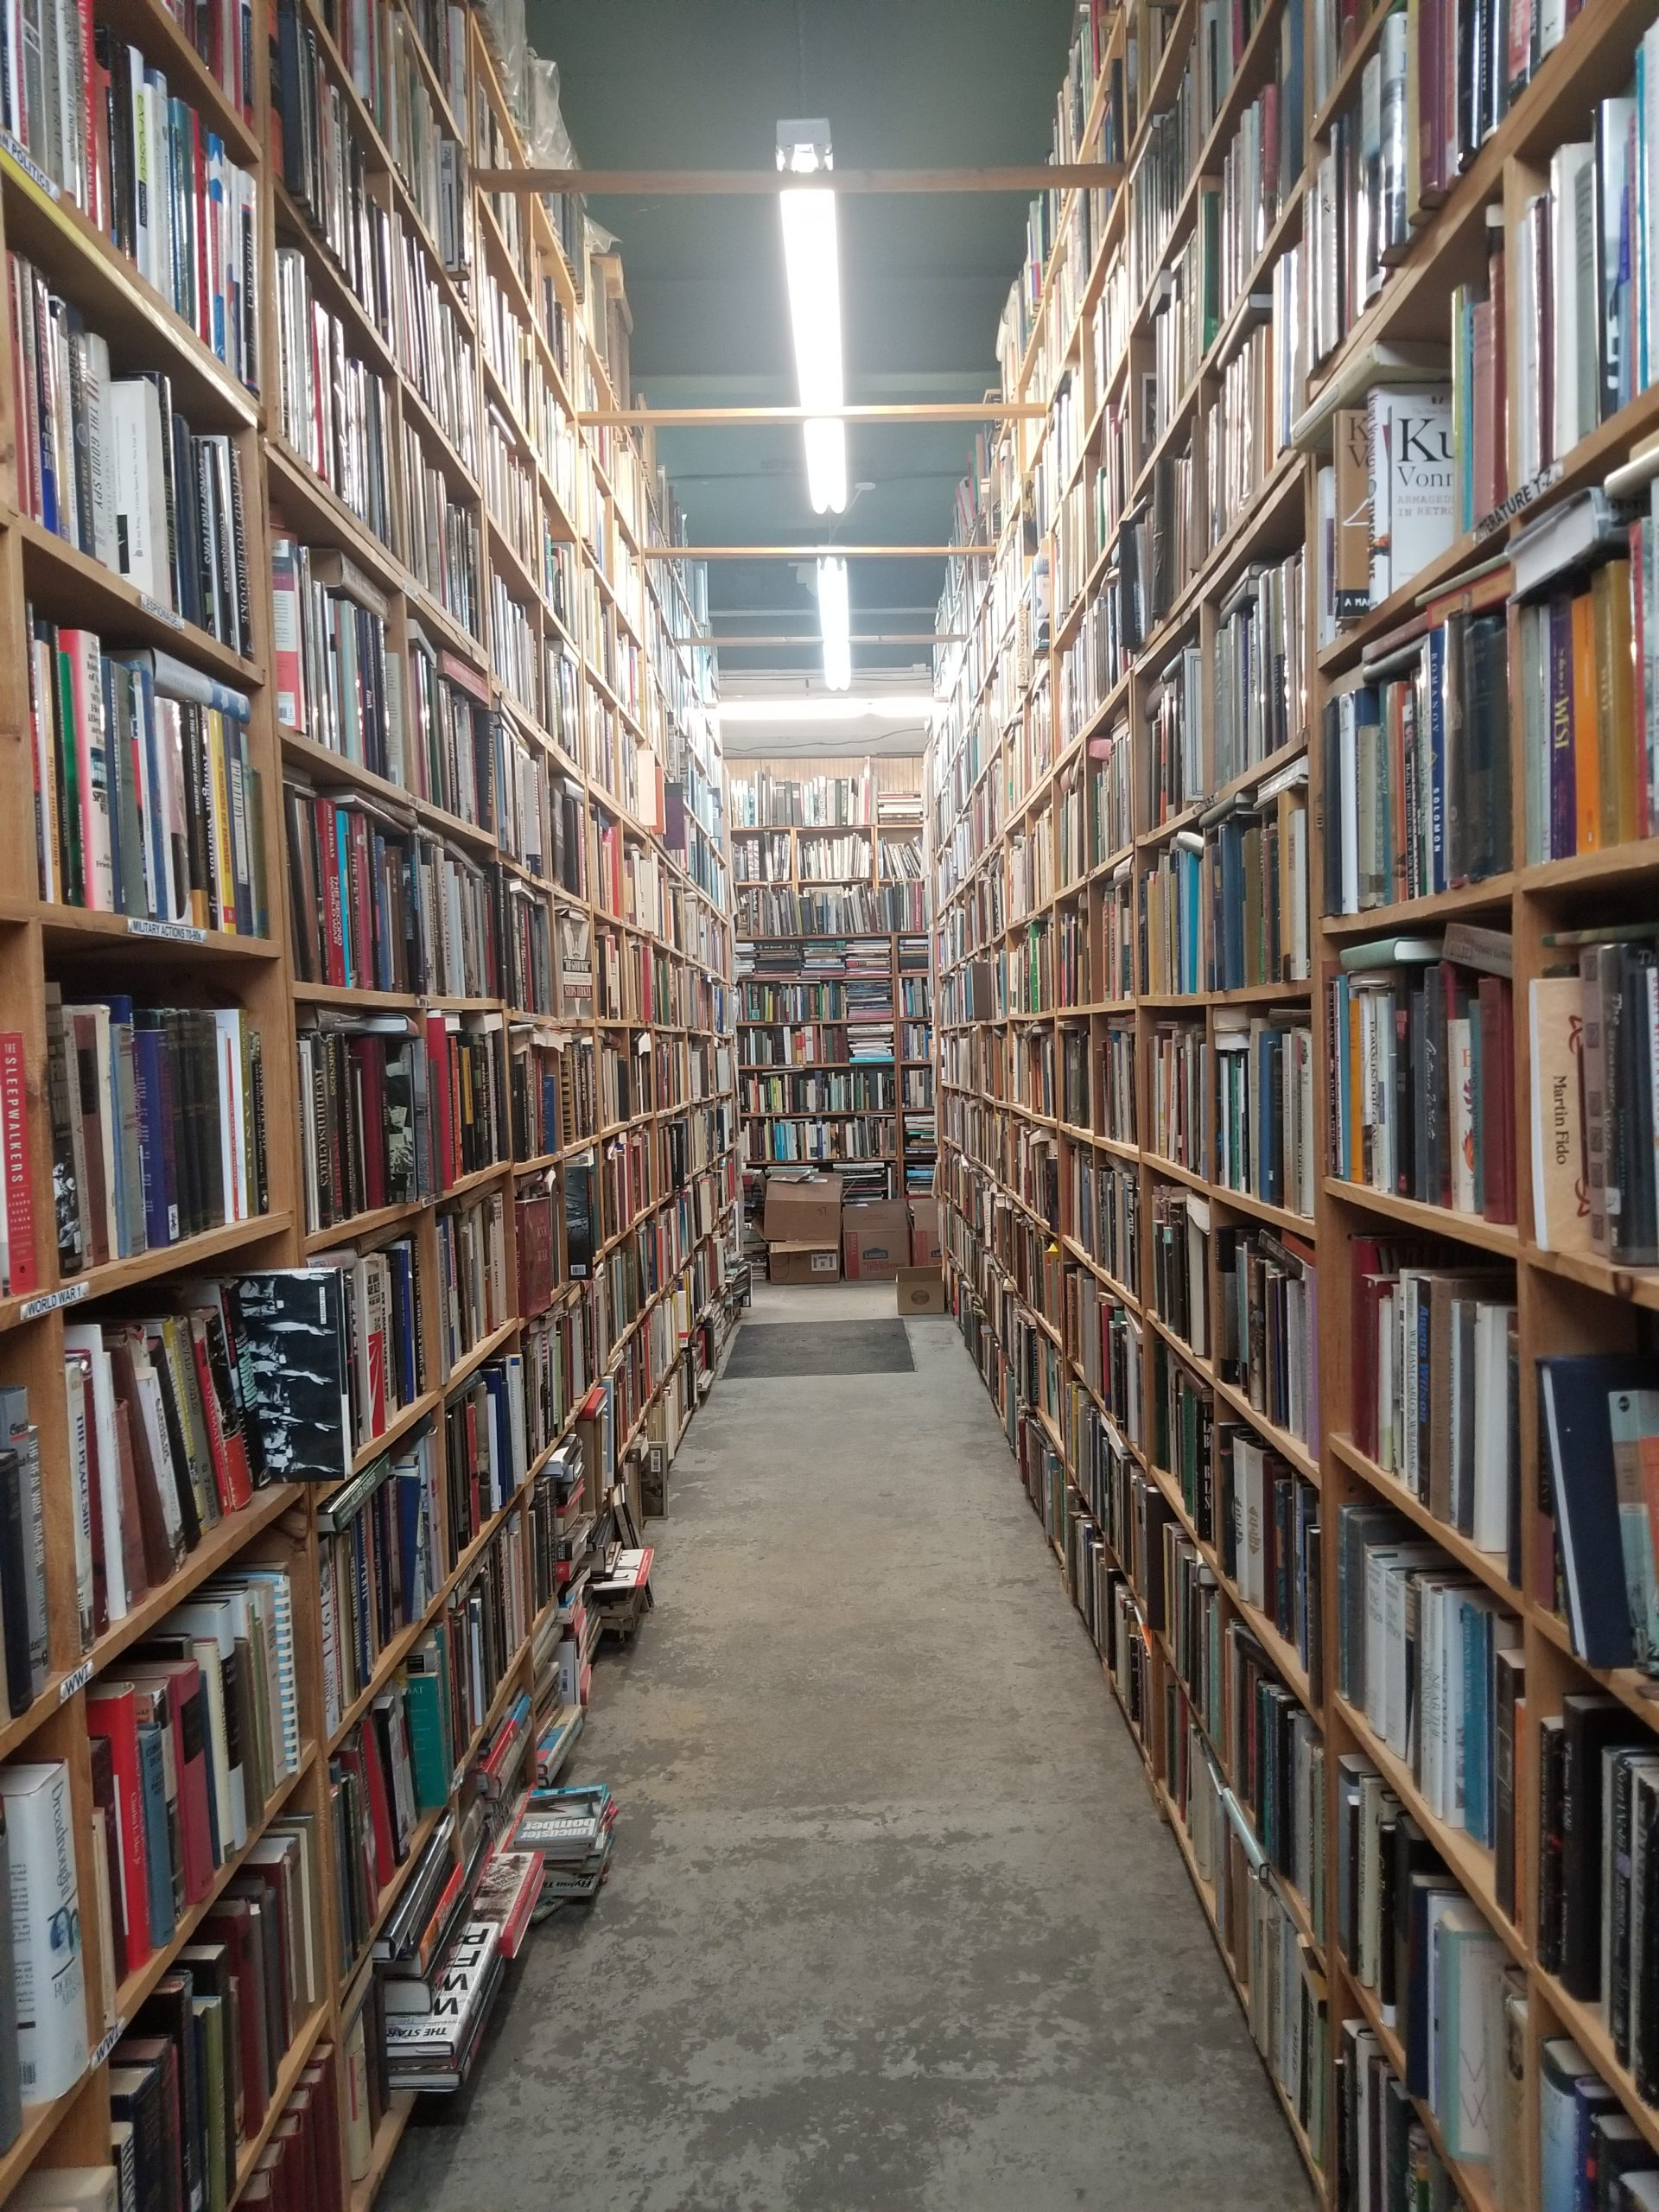 Aisle of used books on floor to ceiling shelves